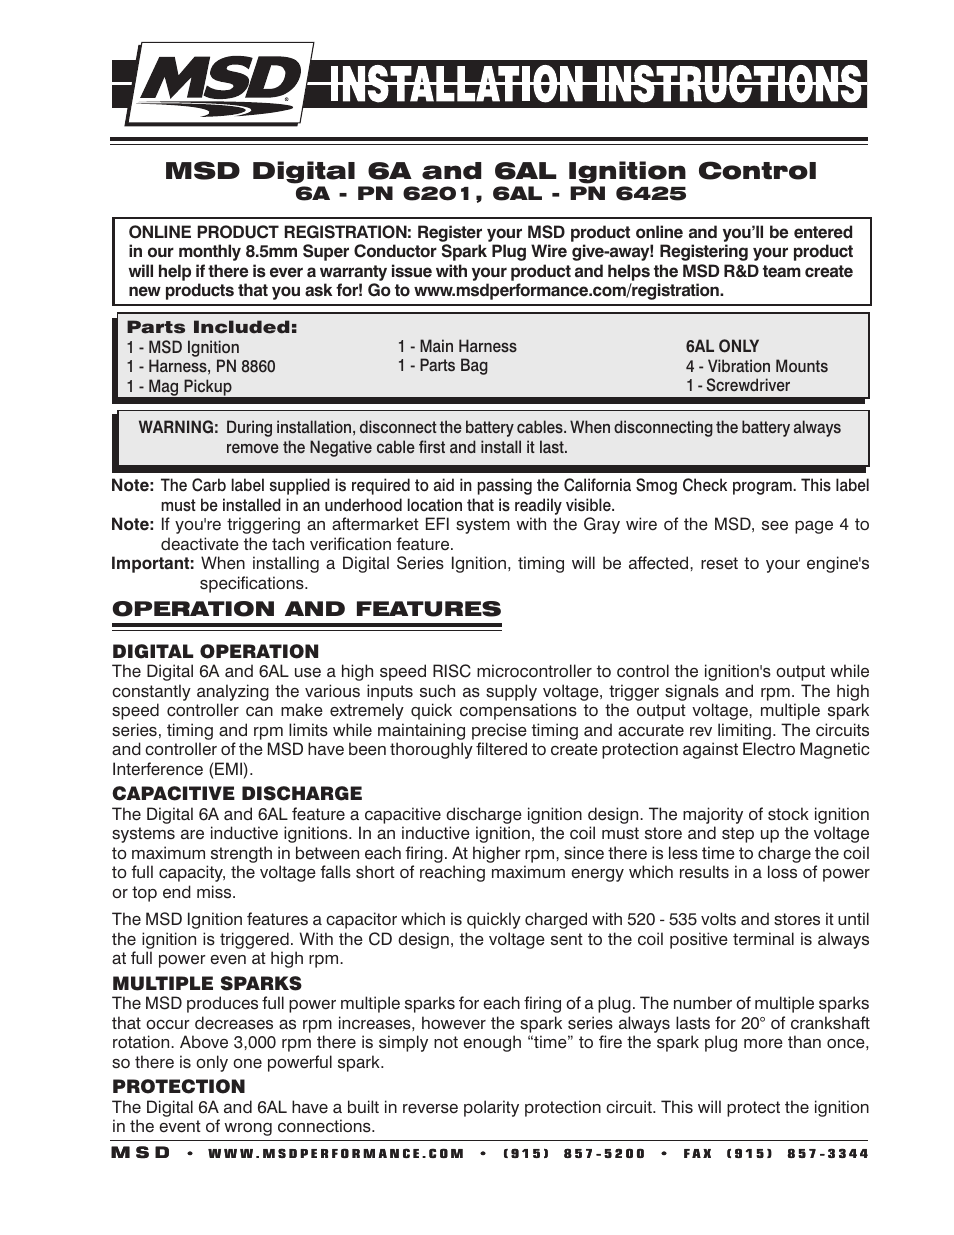 Msd Digital 6a Ignition Control User Manual